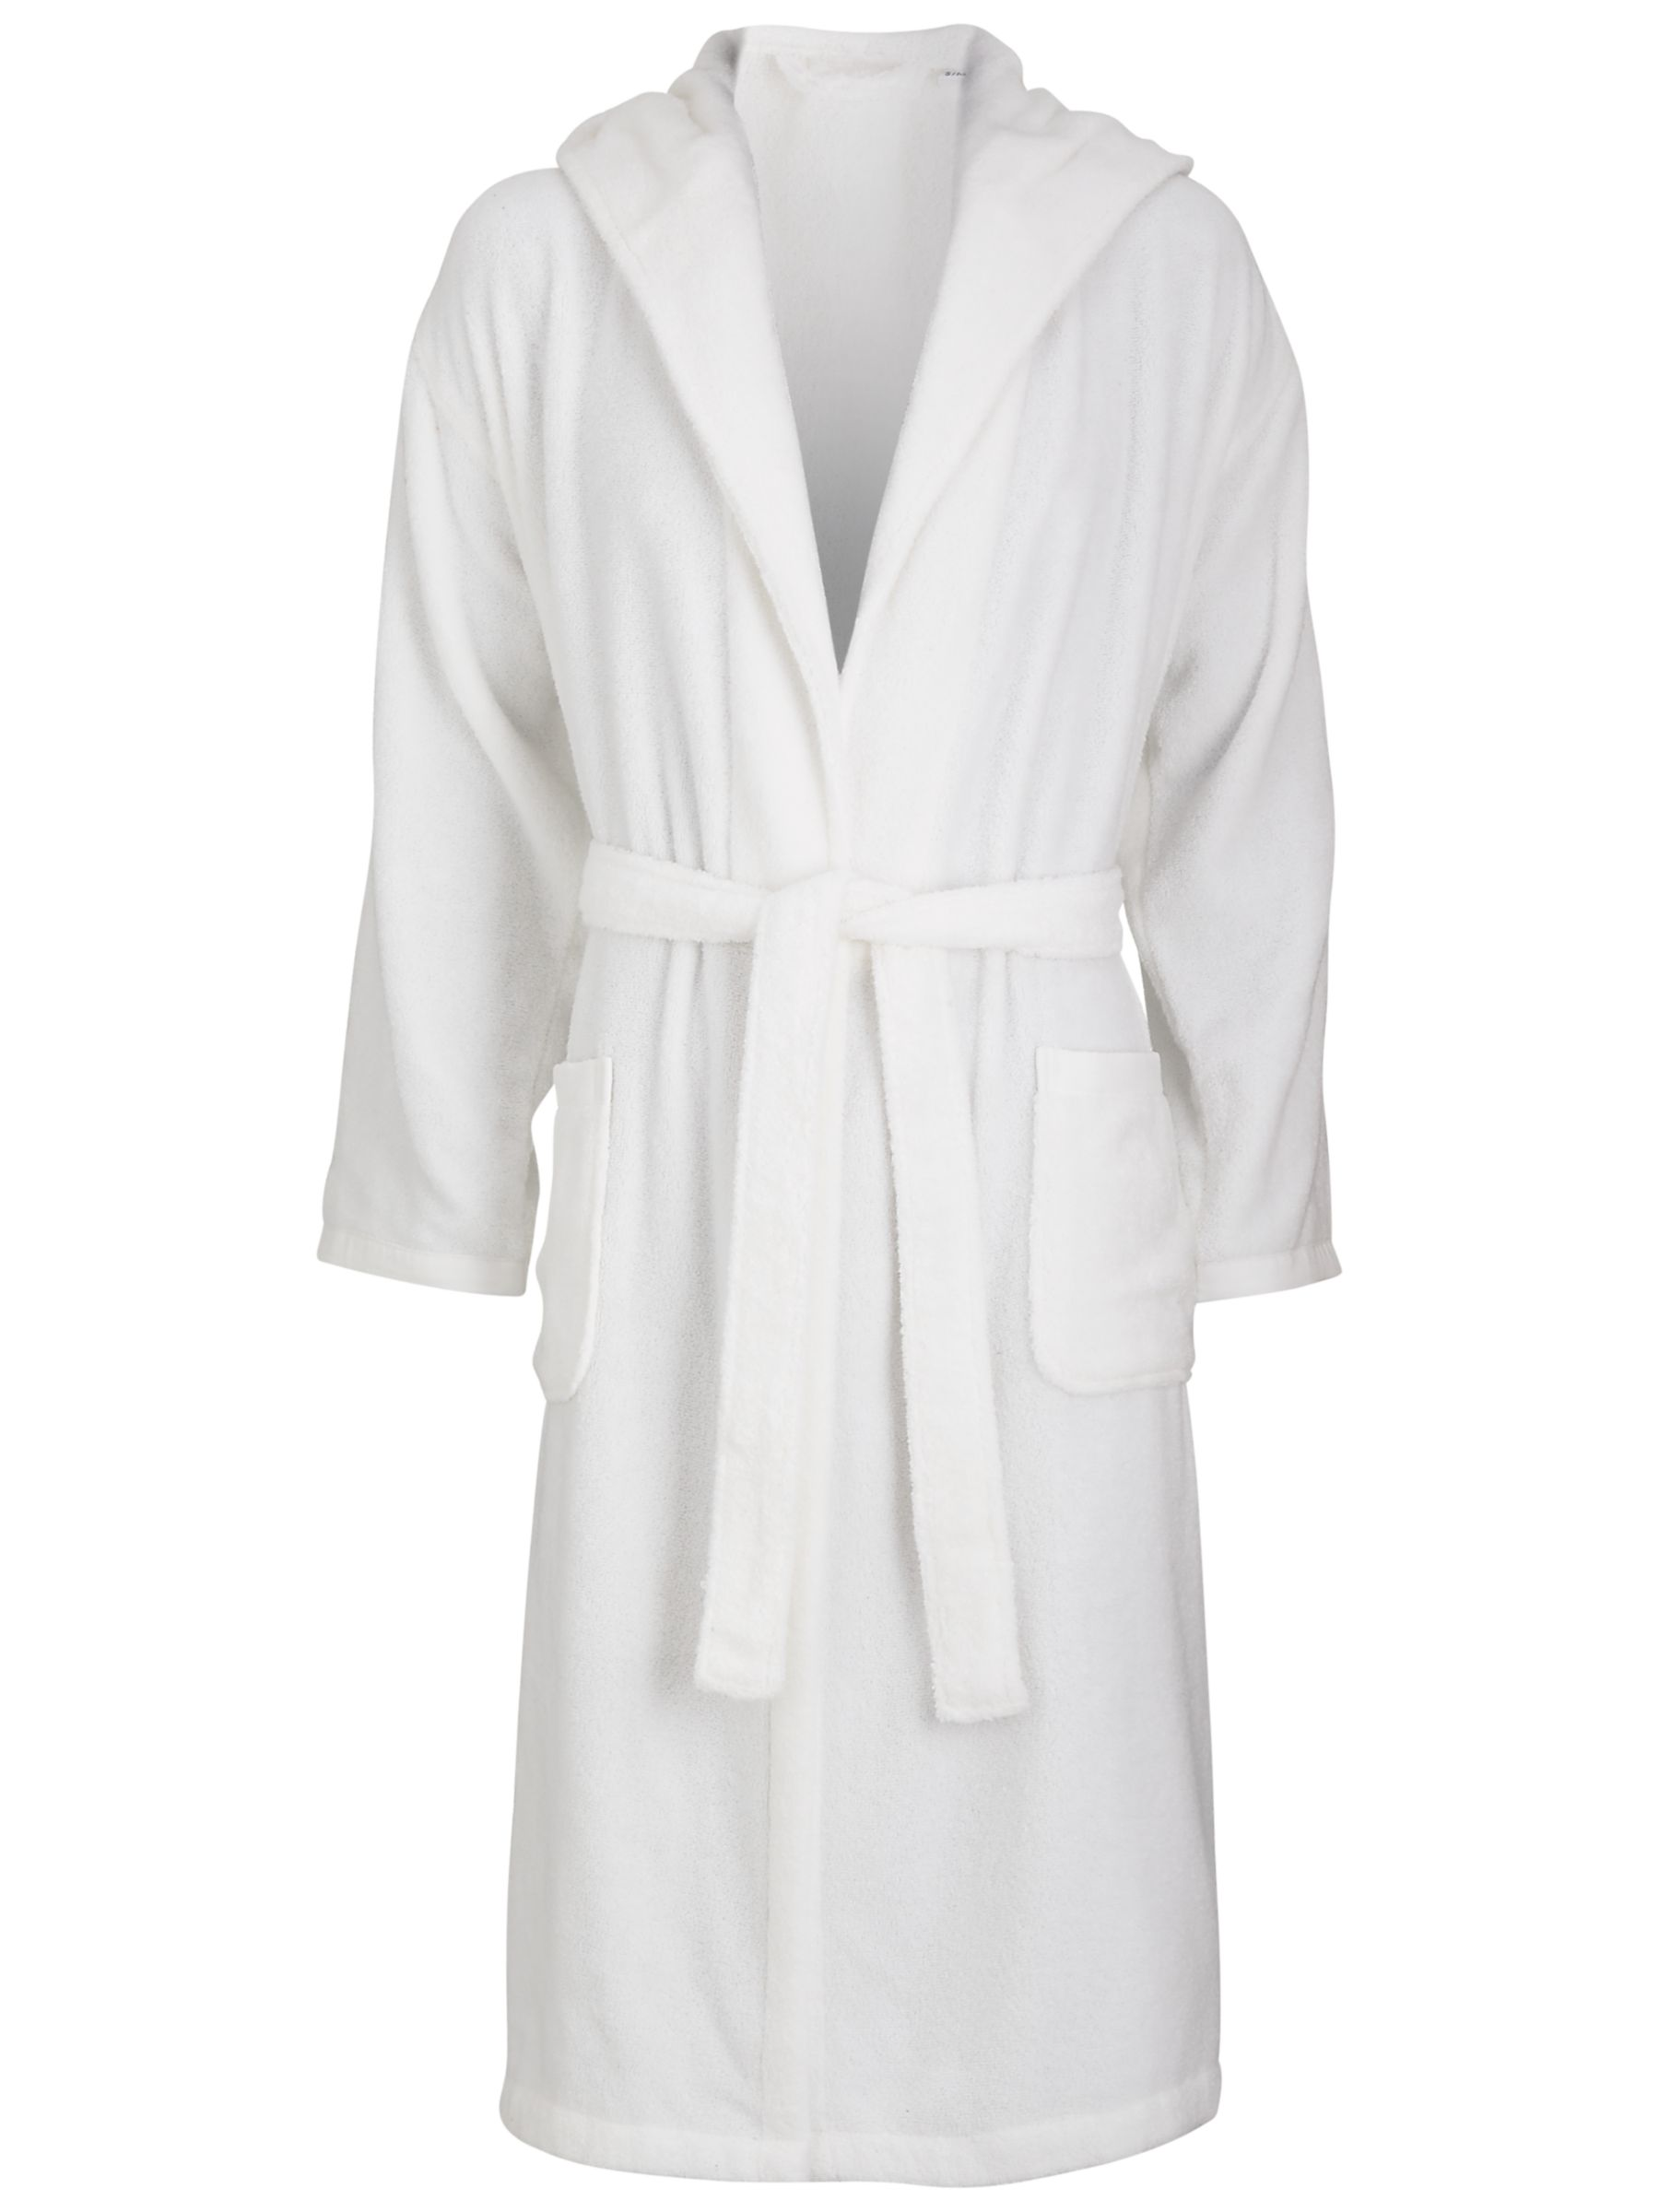 John Lewis Winter Warmth Unisex Bathrobe, White